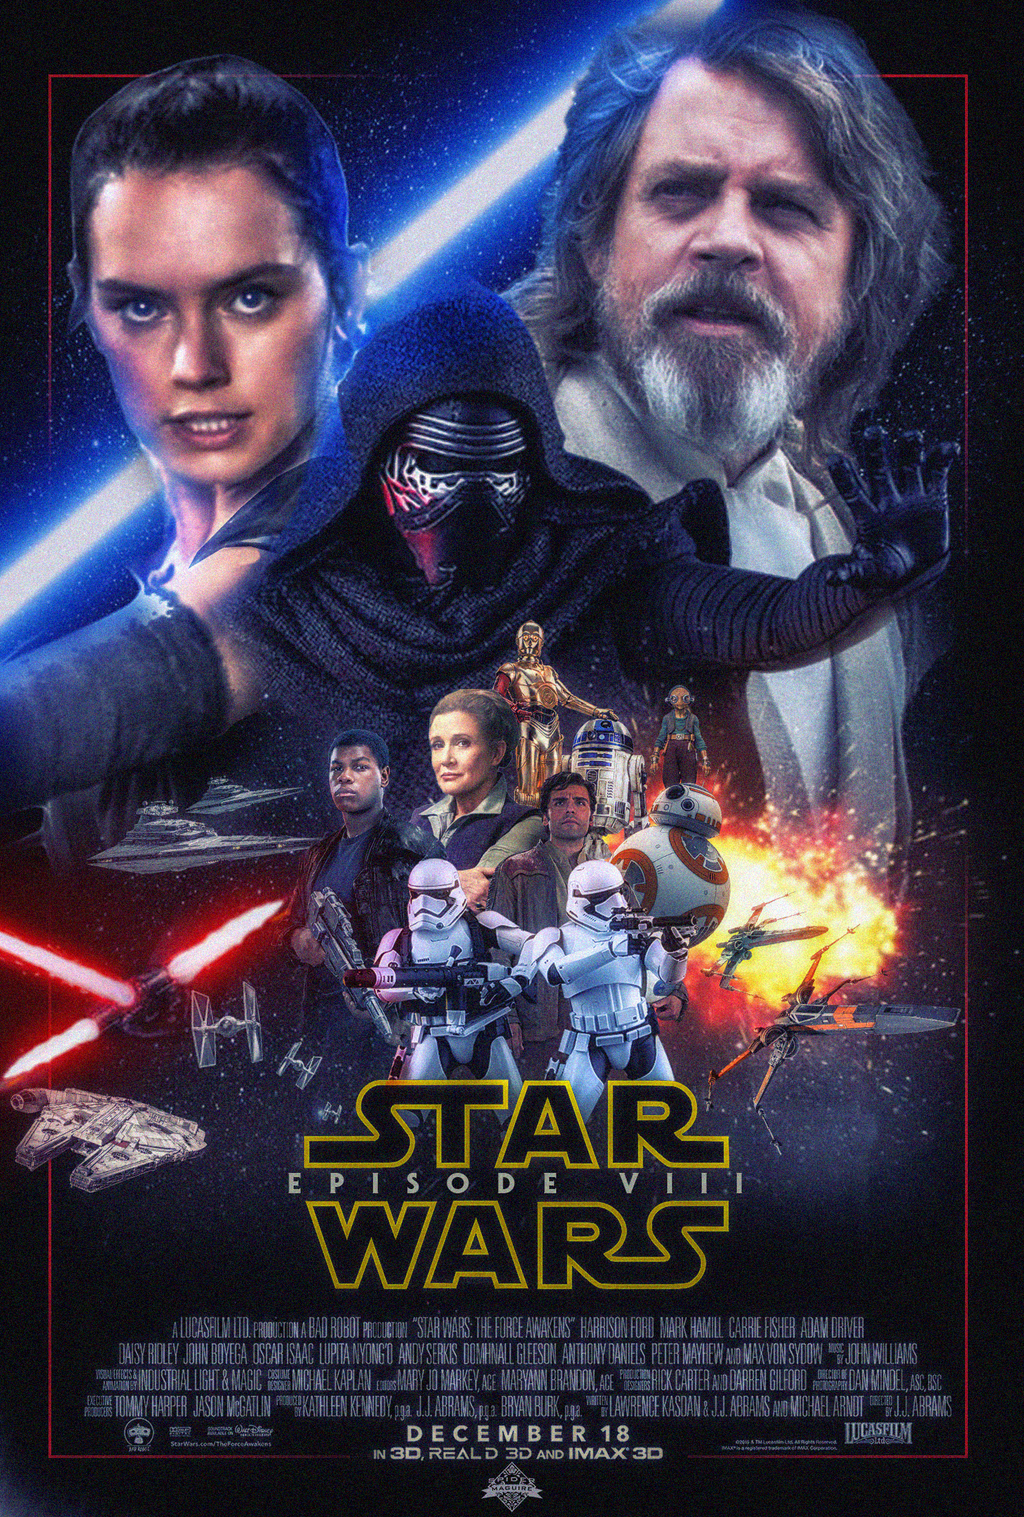 Valuable star wars movie posters